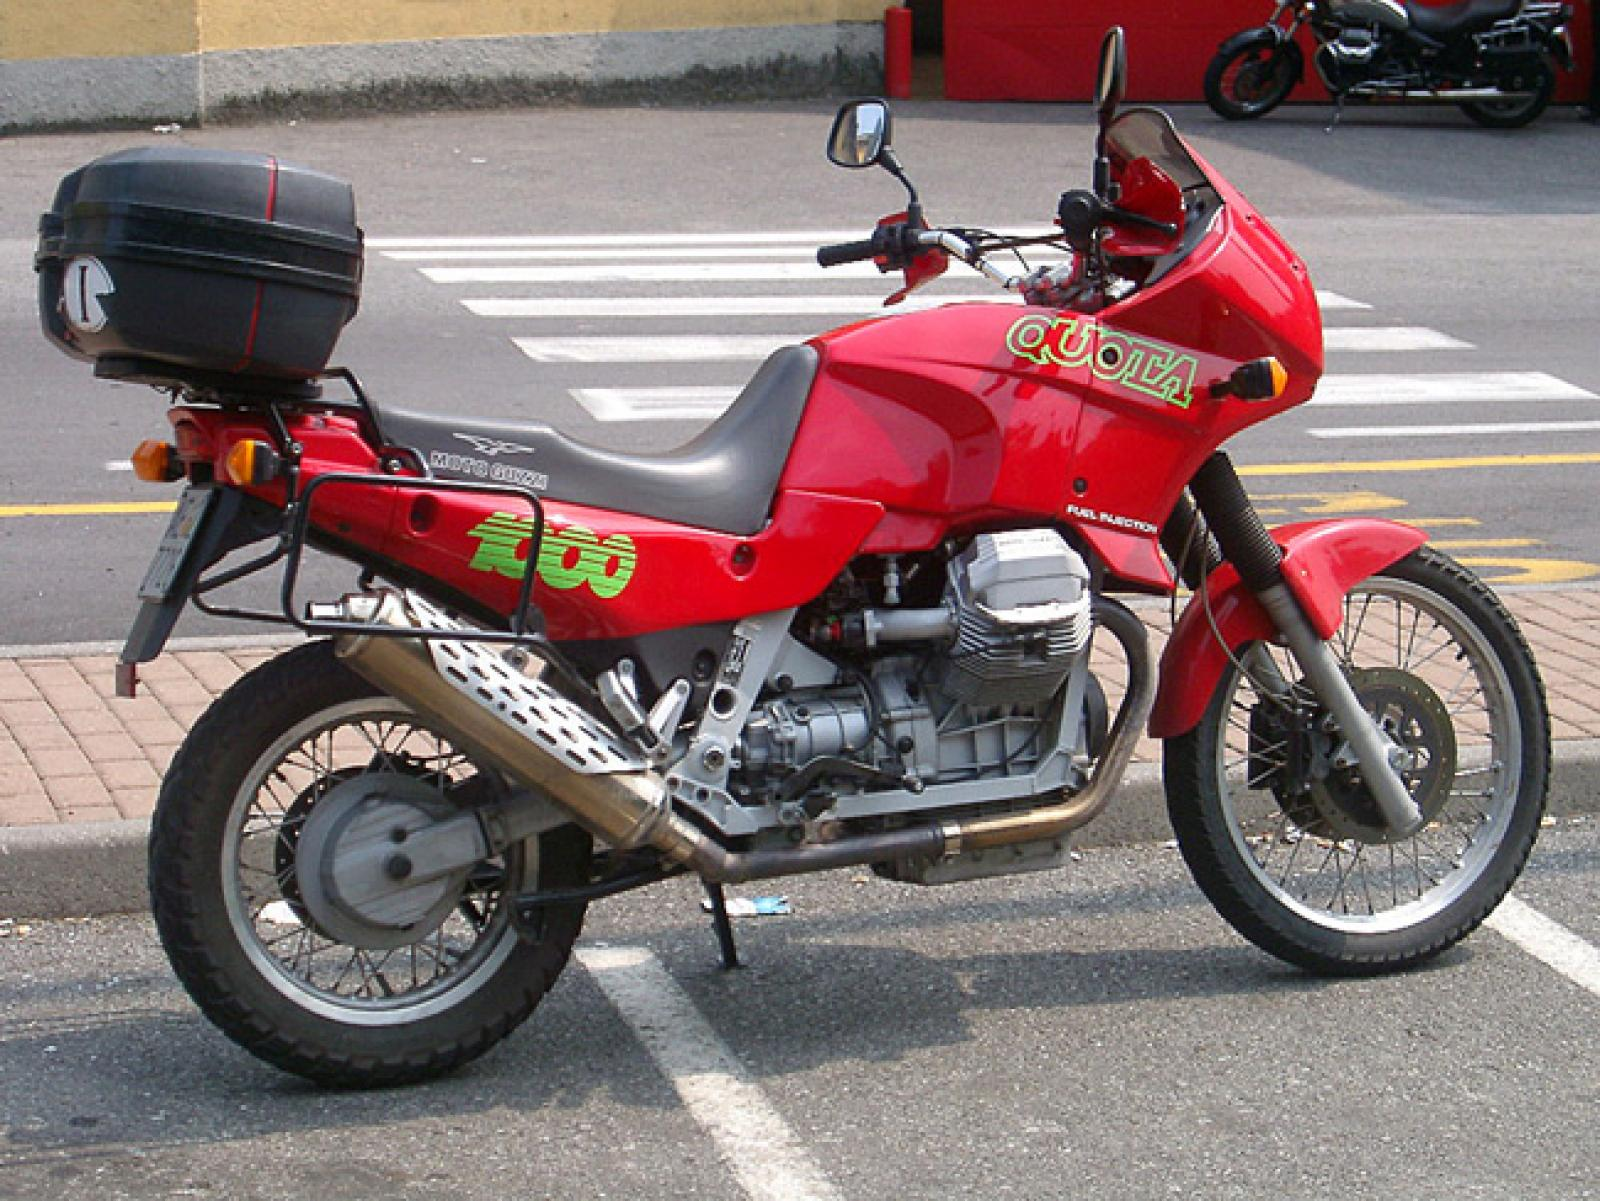 1991 Moto Guzzi 1000 Quota Injection #7